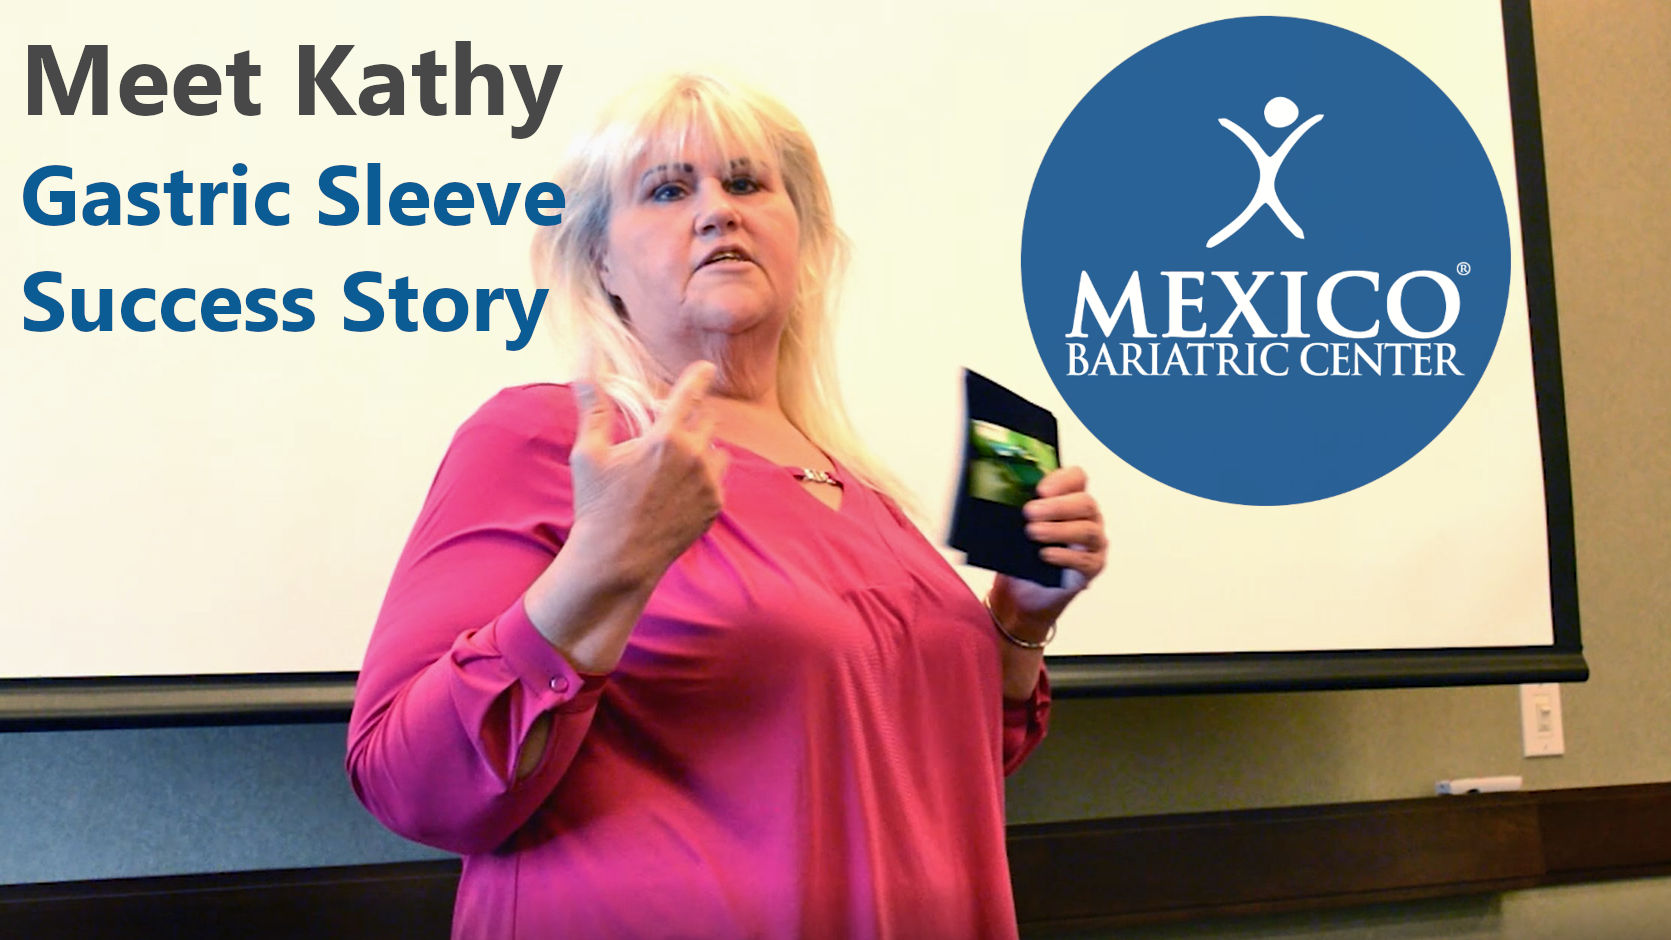 Mexico Bariatric Center - Kathy Gastric Sleeve Success Story Patient Testimonials